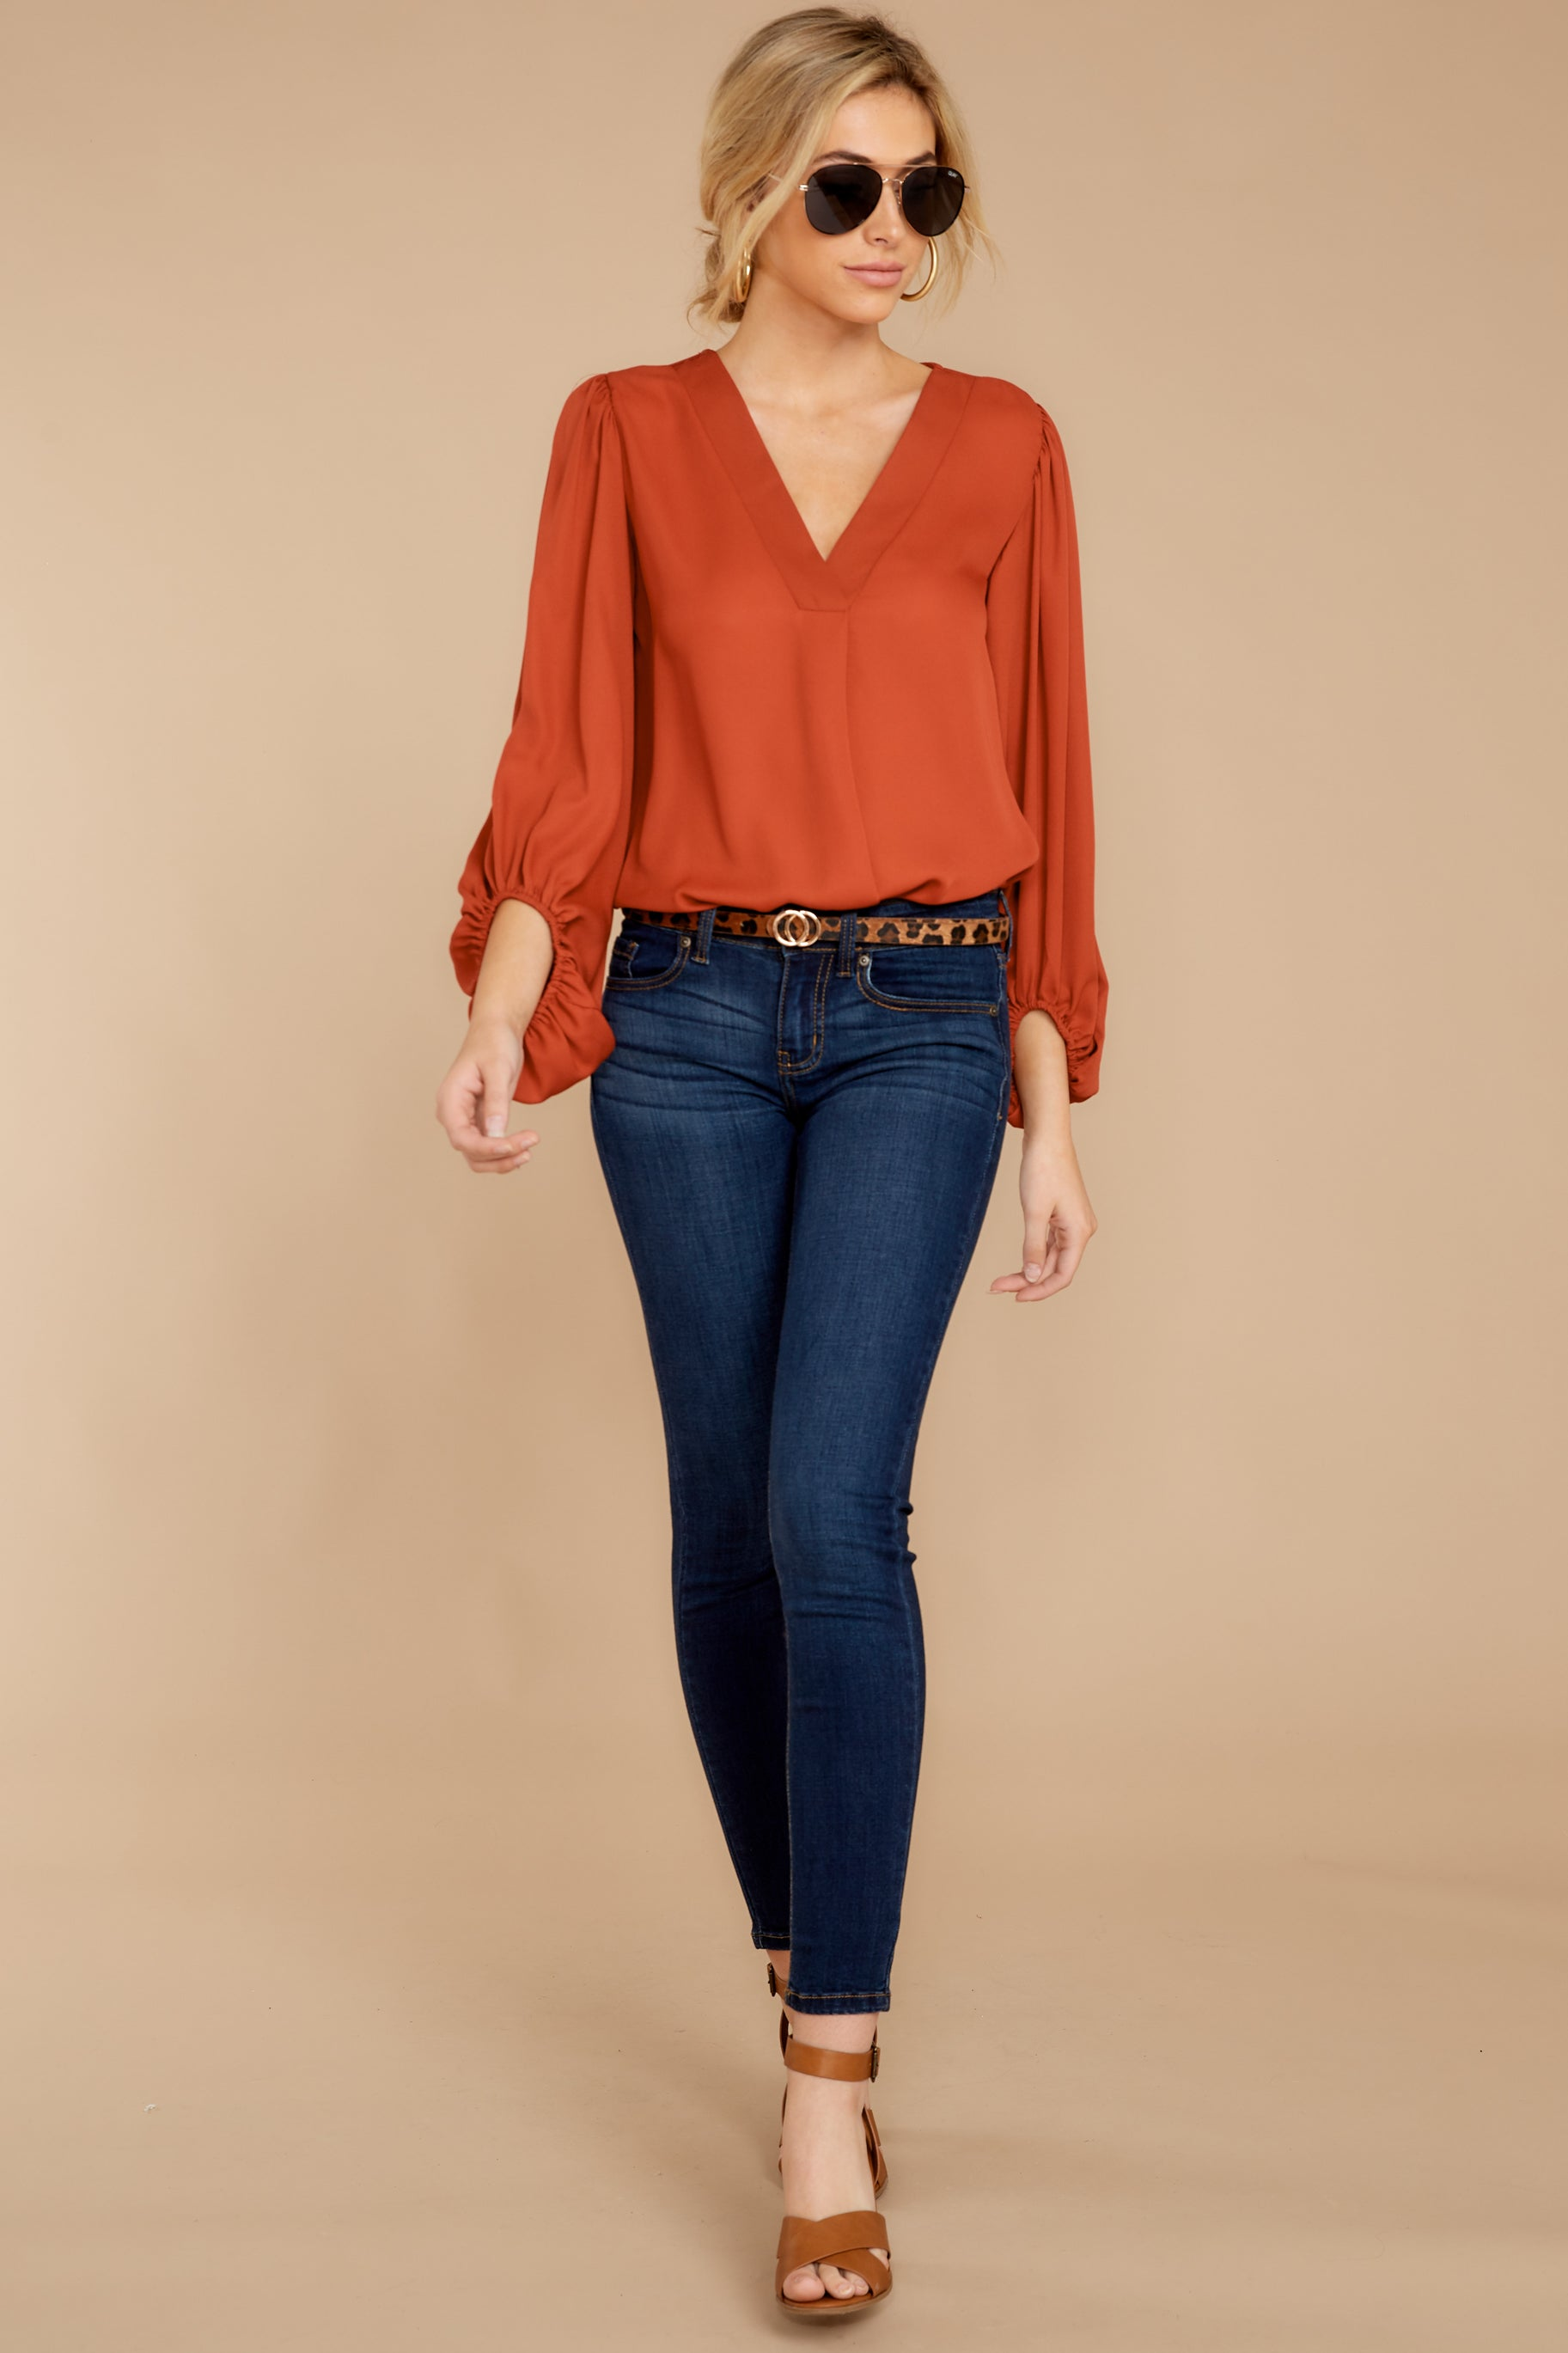 2 Around The Corner Rust Top at reddressboutique.com